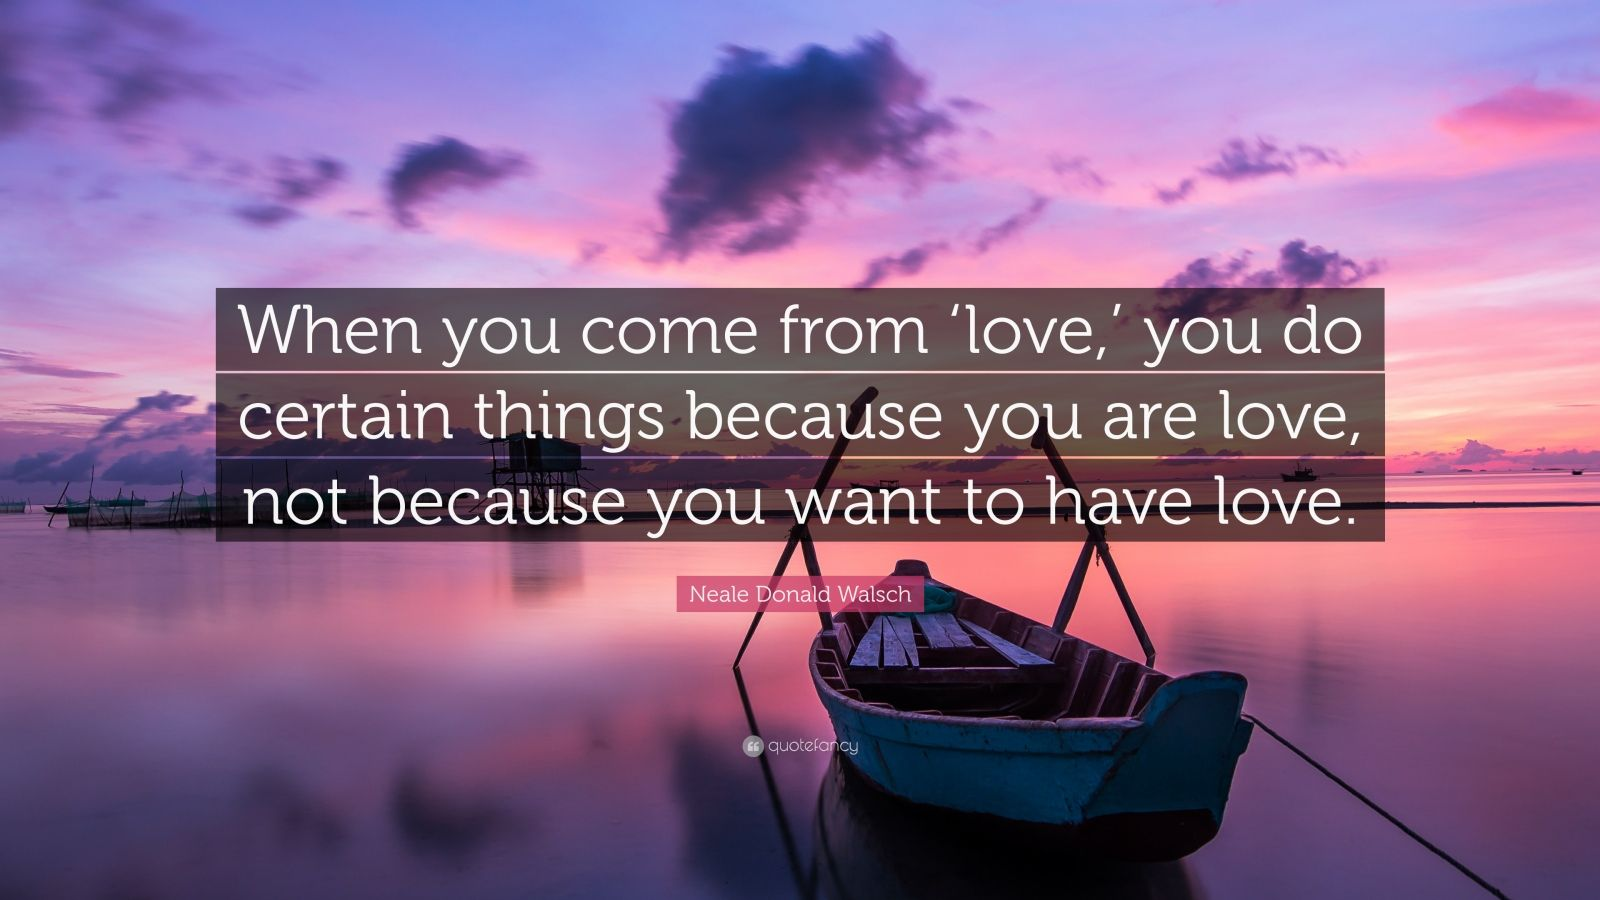 """Neale Donald Walsch Quote: """"When you come from 'love,' you do certain things because you are love, not because you want to have love."""""""